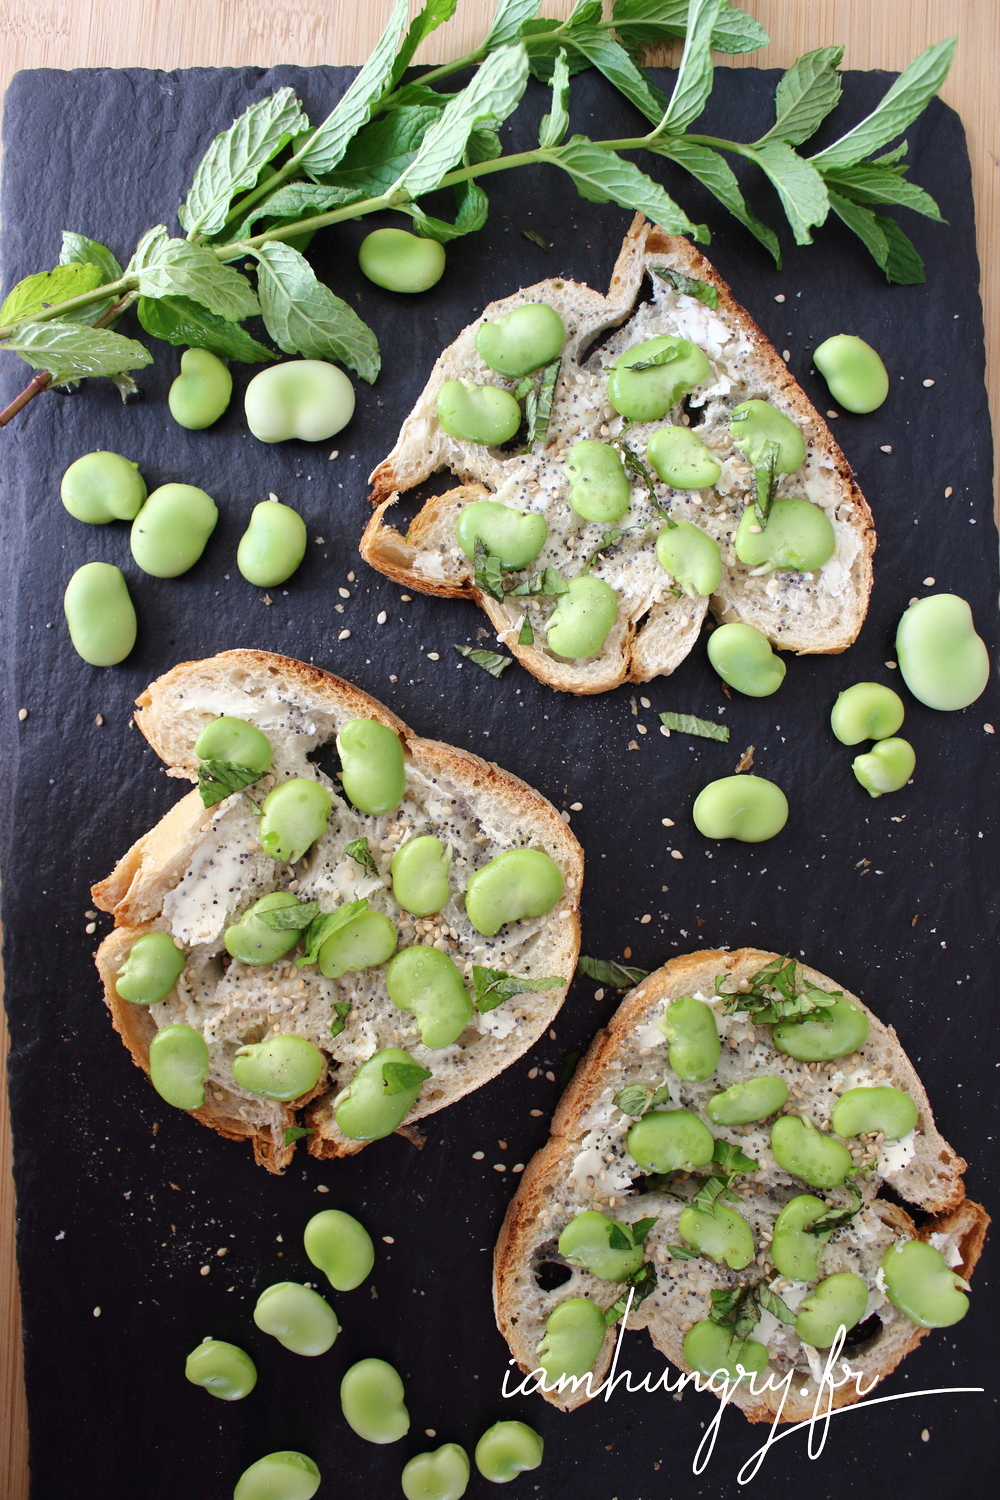 Tartines feves beurre menthe 1f